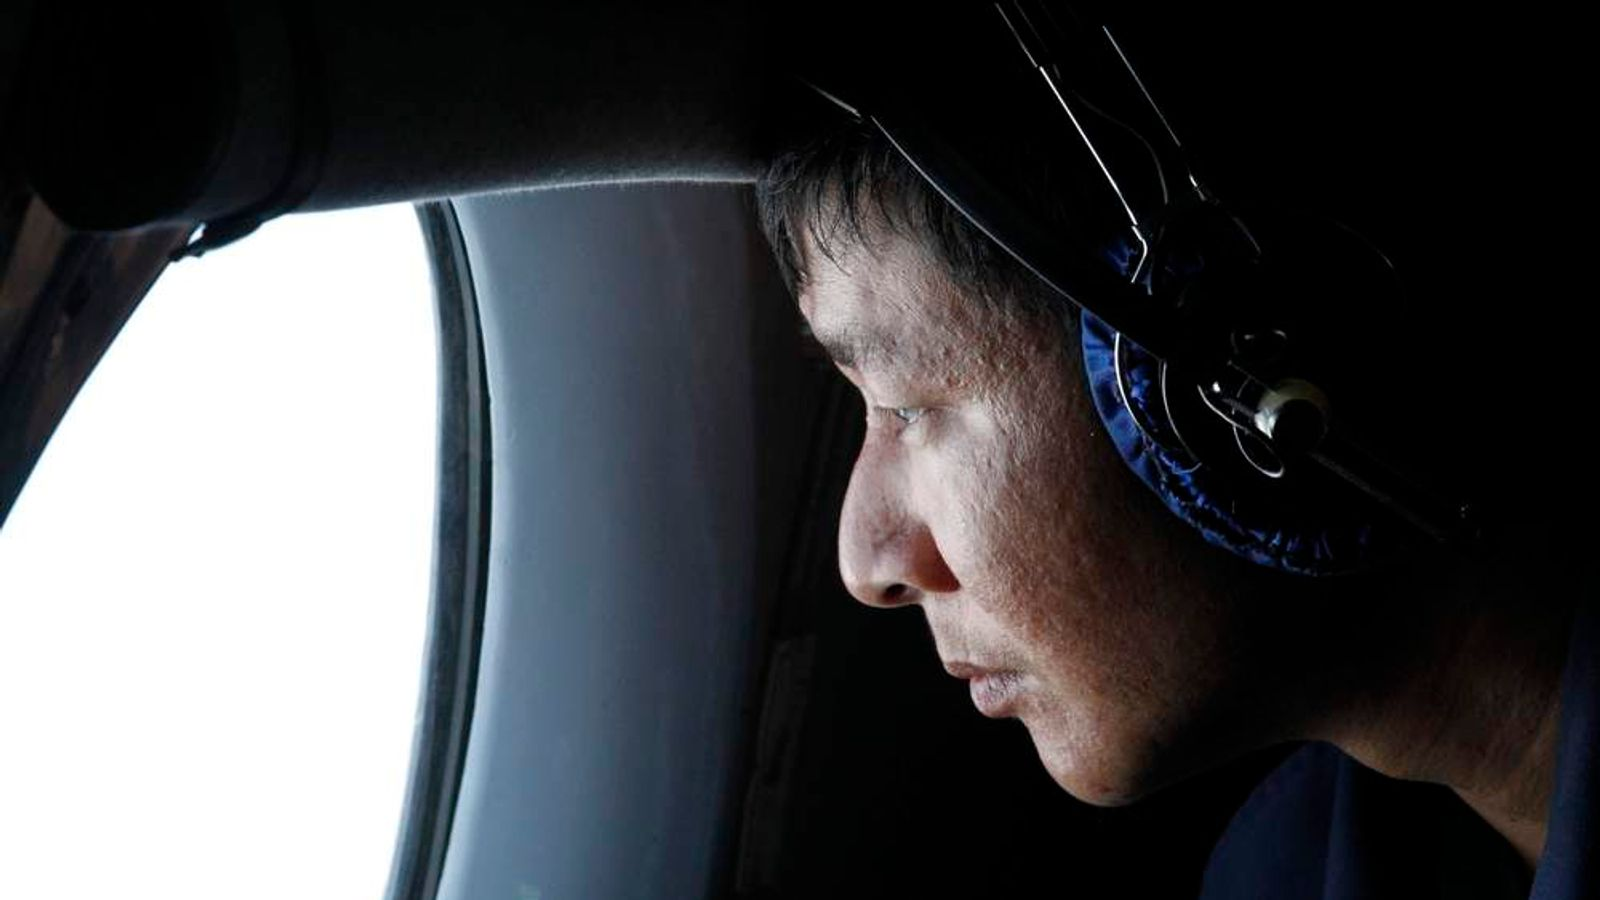 A military officer looks out a window during a search and rescue mission onboard an aircraft belonging to the Vietnamese airforce off Vietnam's Tho Chu island